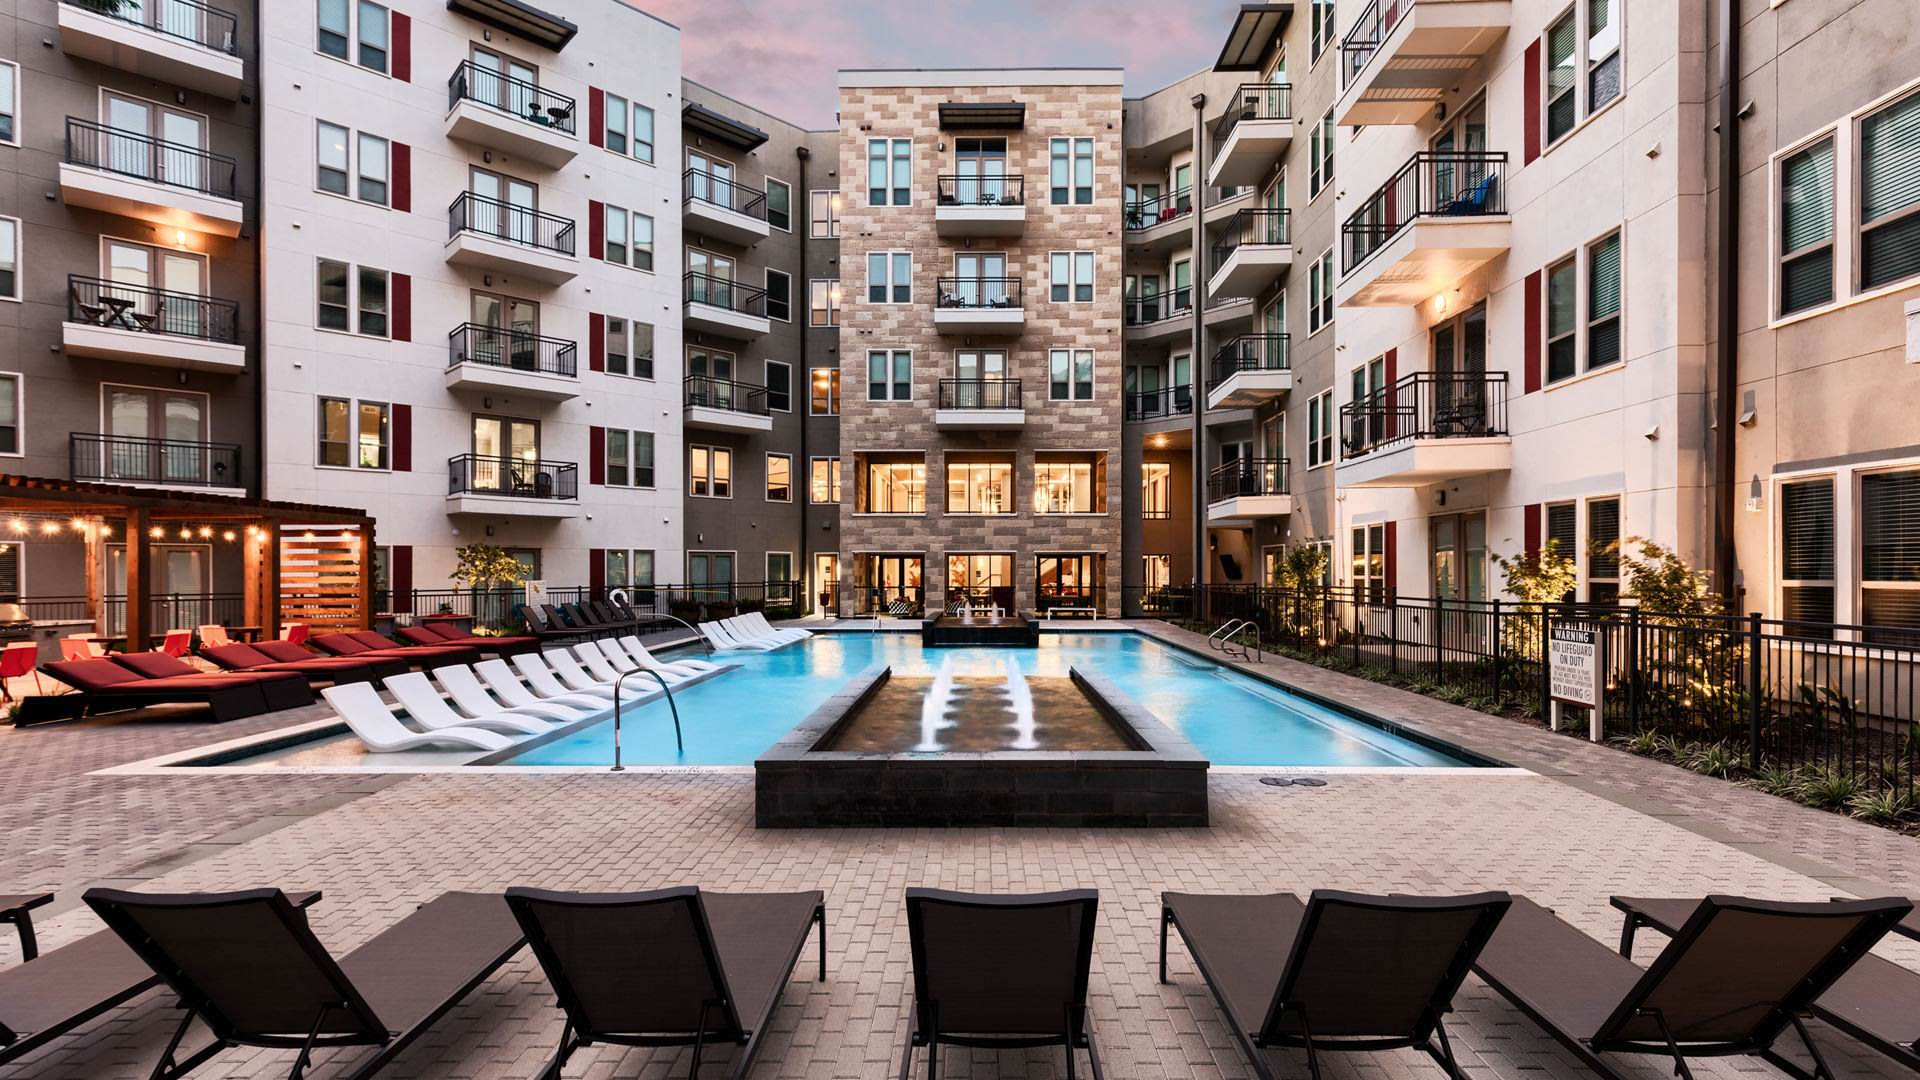 Las Colinas apartment complex with pool